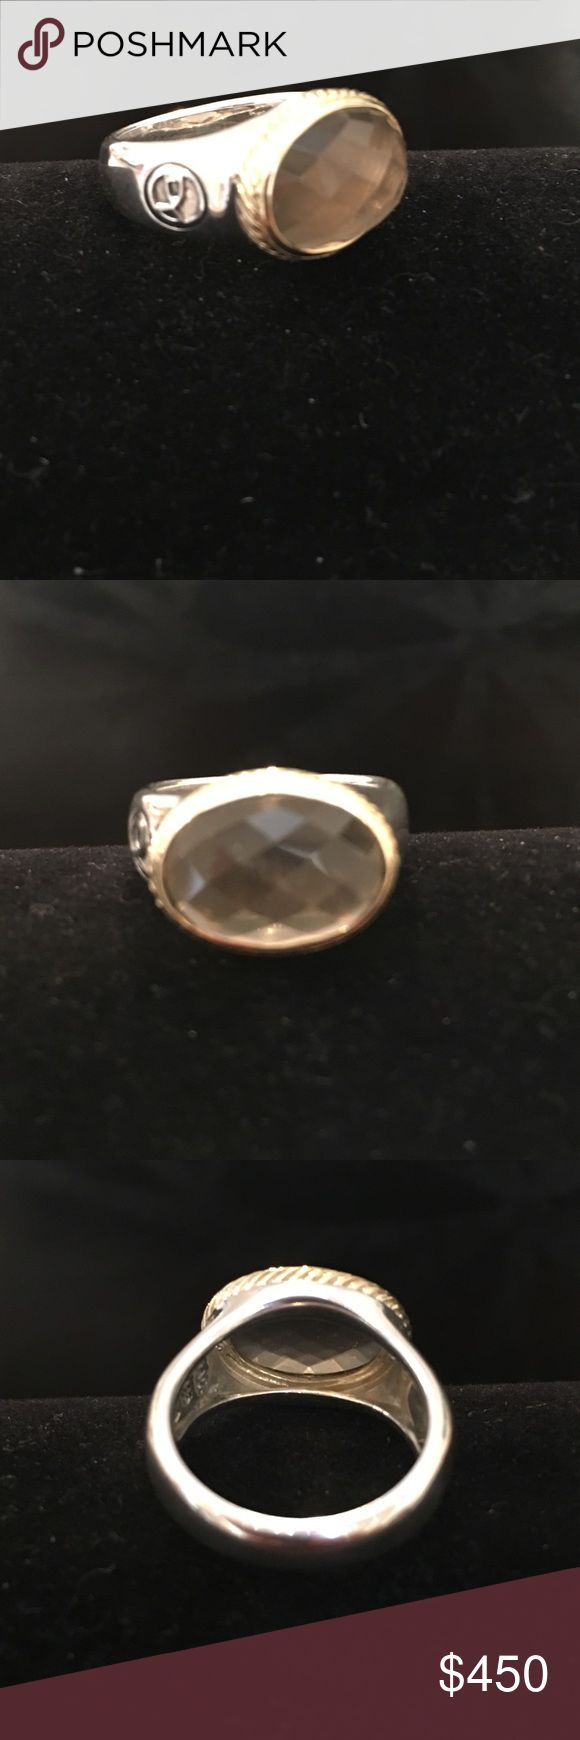 David Yurman SS/18K Gold frosted Smoky Quartz Ring David Yurman Sterling Silver/18K Yellow Gold frosted Smoky Quartz East/West Oval Round in size 6.  Never worn. David Yurman Jewelry Rings